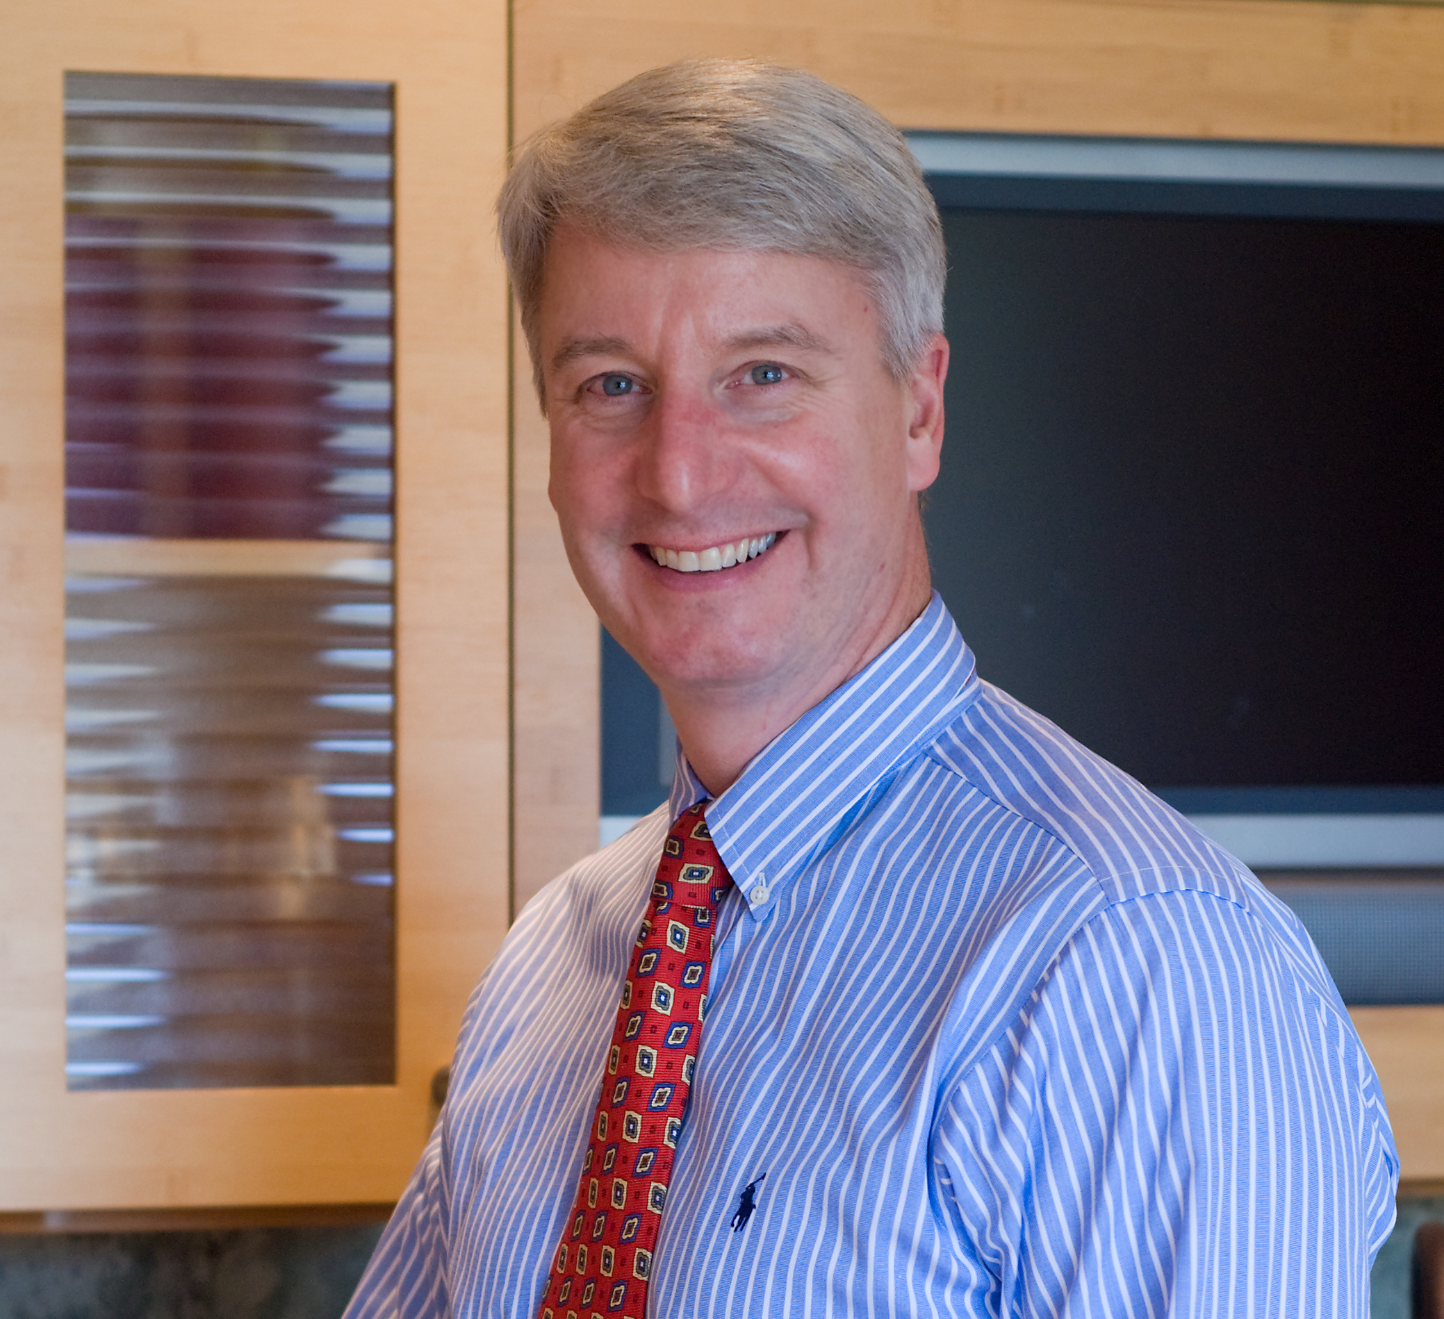 Richard Hendrick, CKD  Owner, Kitchen and Bath Designer  Richard has spent his entire 35 year career in the family business. His father and CKI Founder was his mentor and instilled in Richard the dedicated, client-focused, collaborative approach on which our company still runs.   Read More